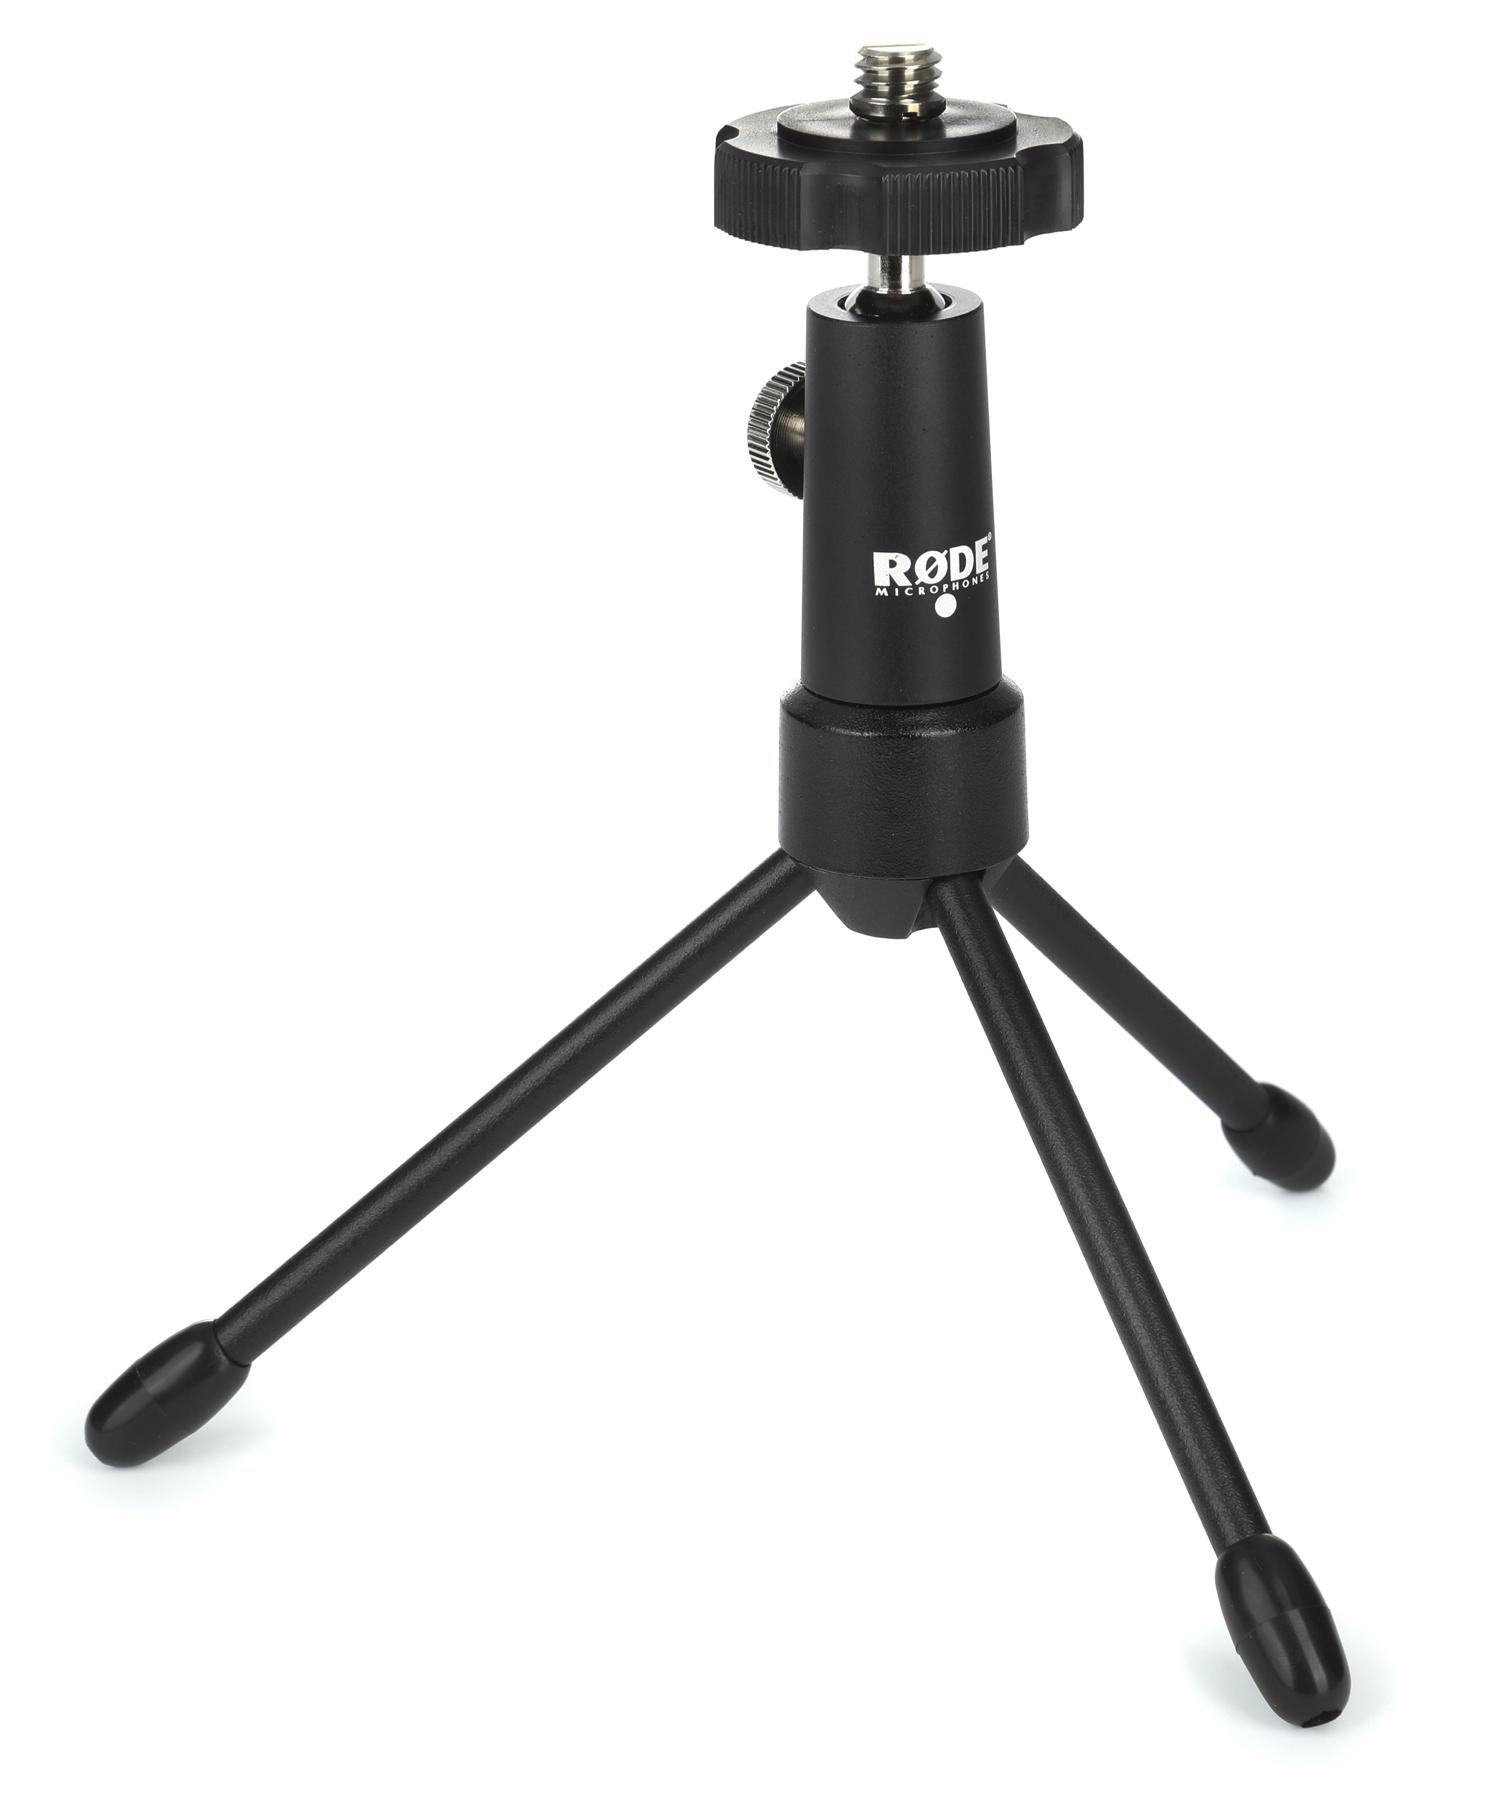 Rode Tripod Mini Stand Sweetwater Mic Videomicro Video Micro Image 1